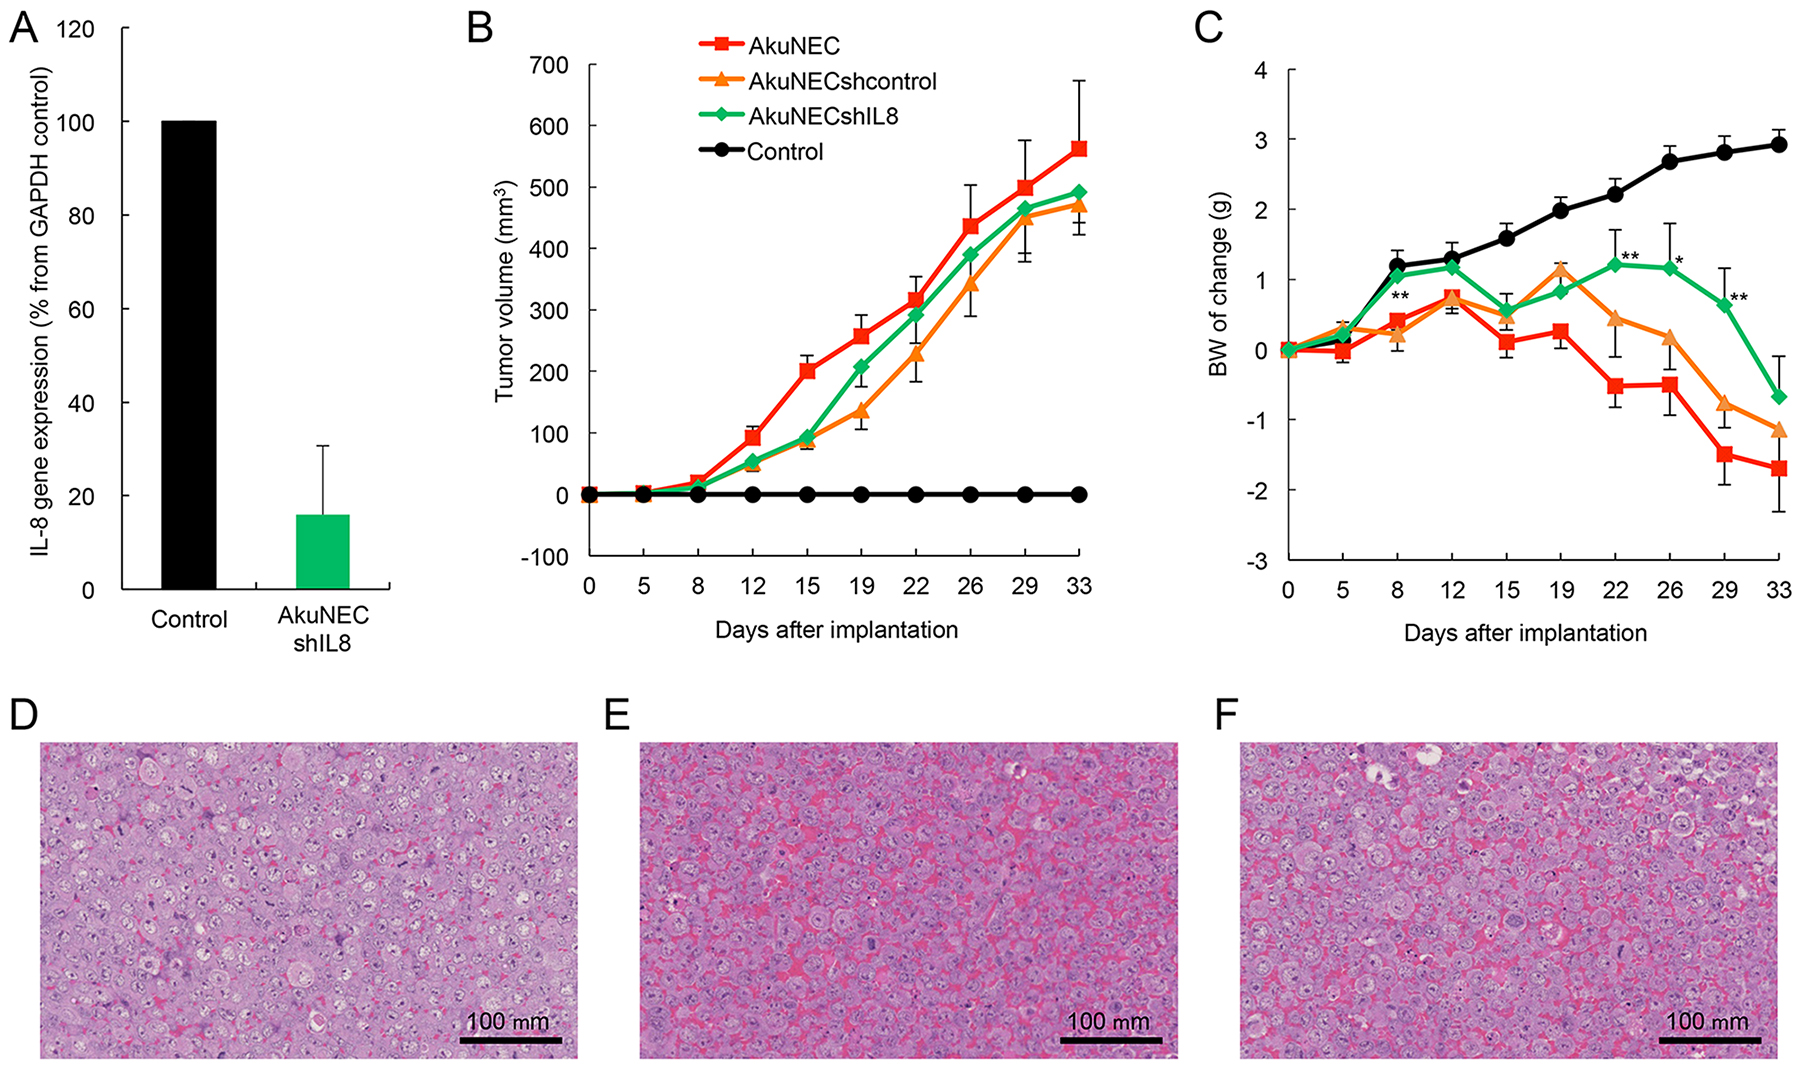 Results of IL-8 gene knockdown on tumor growth and BW-loss in s.